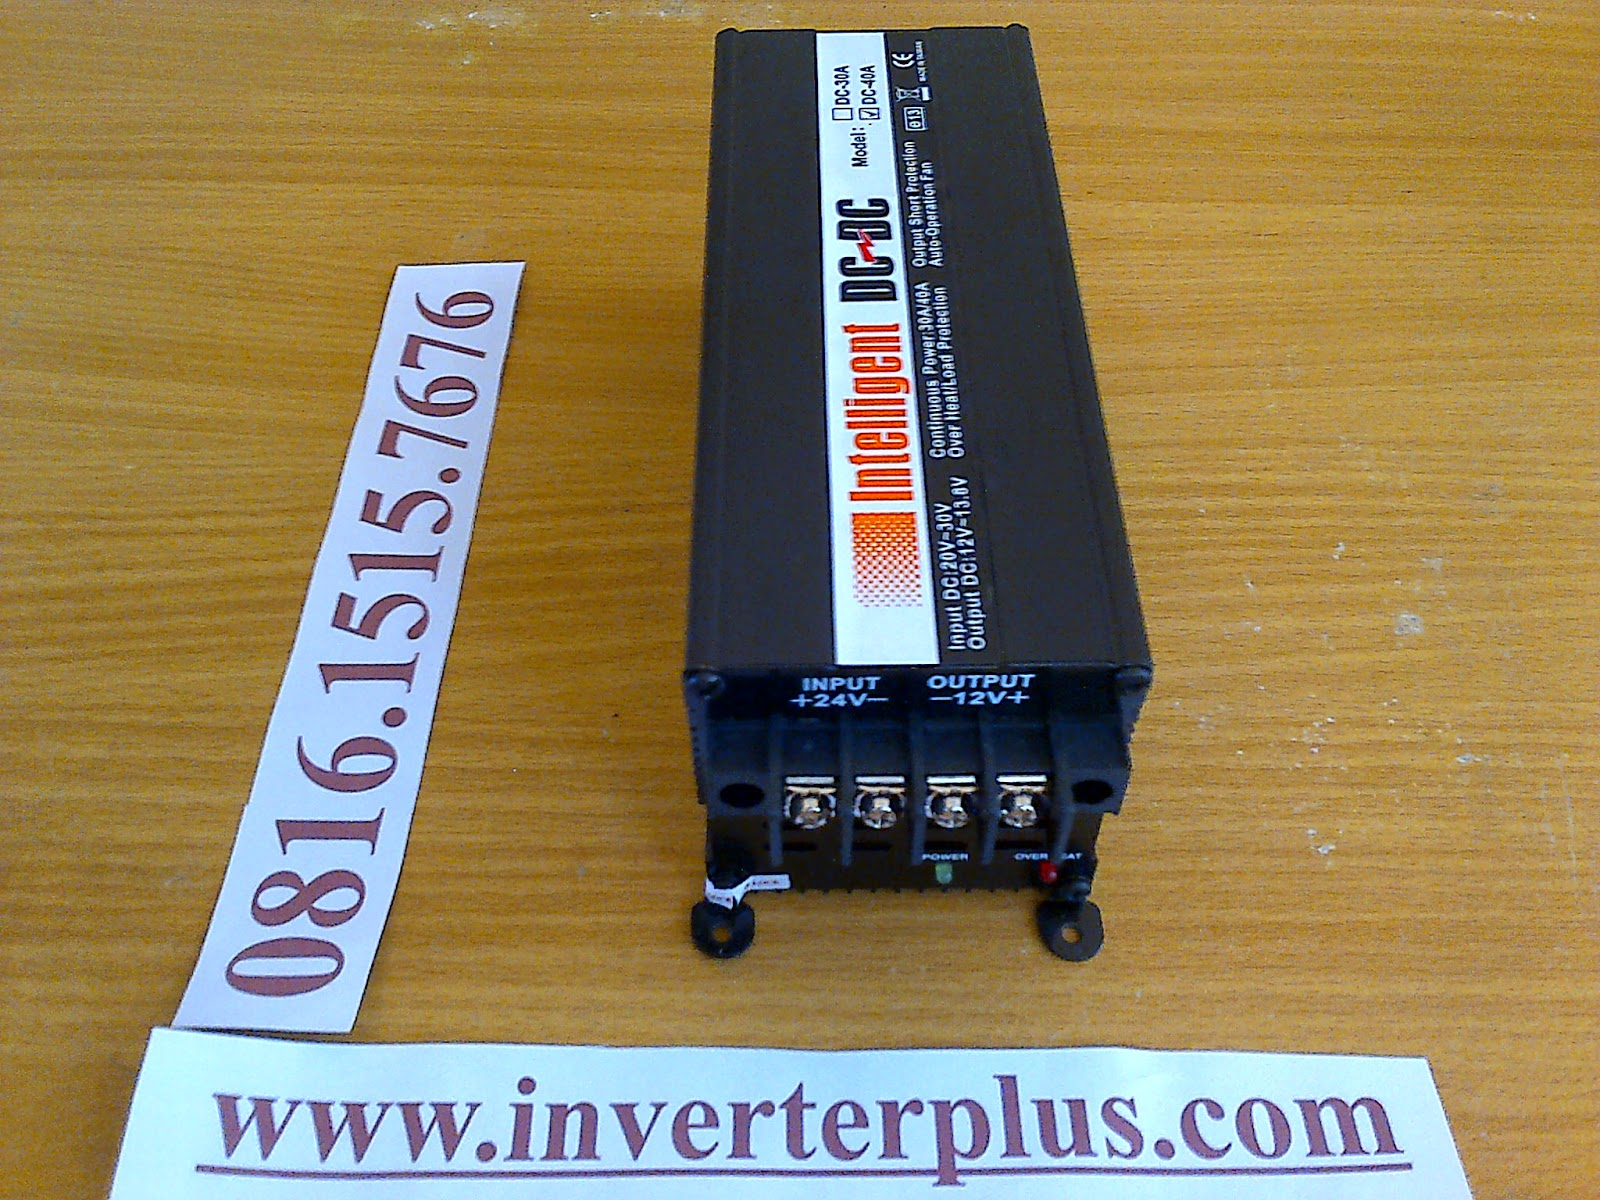 Converter 24VDC to 12VDC Intelligent